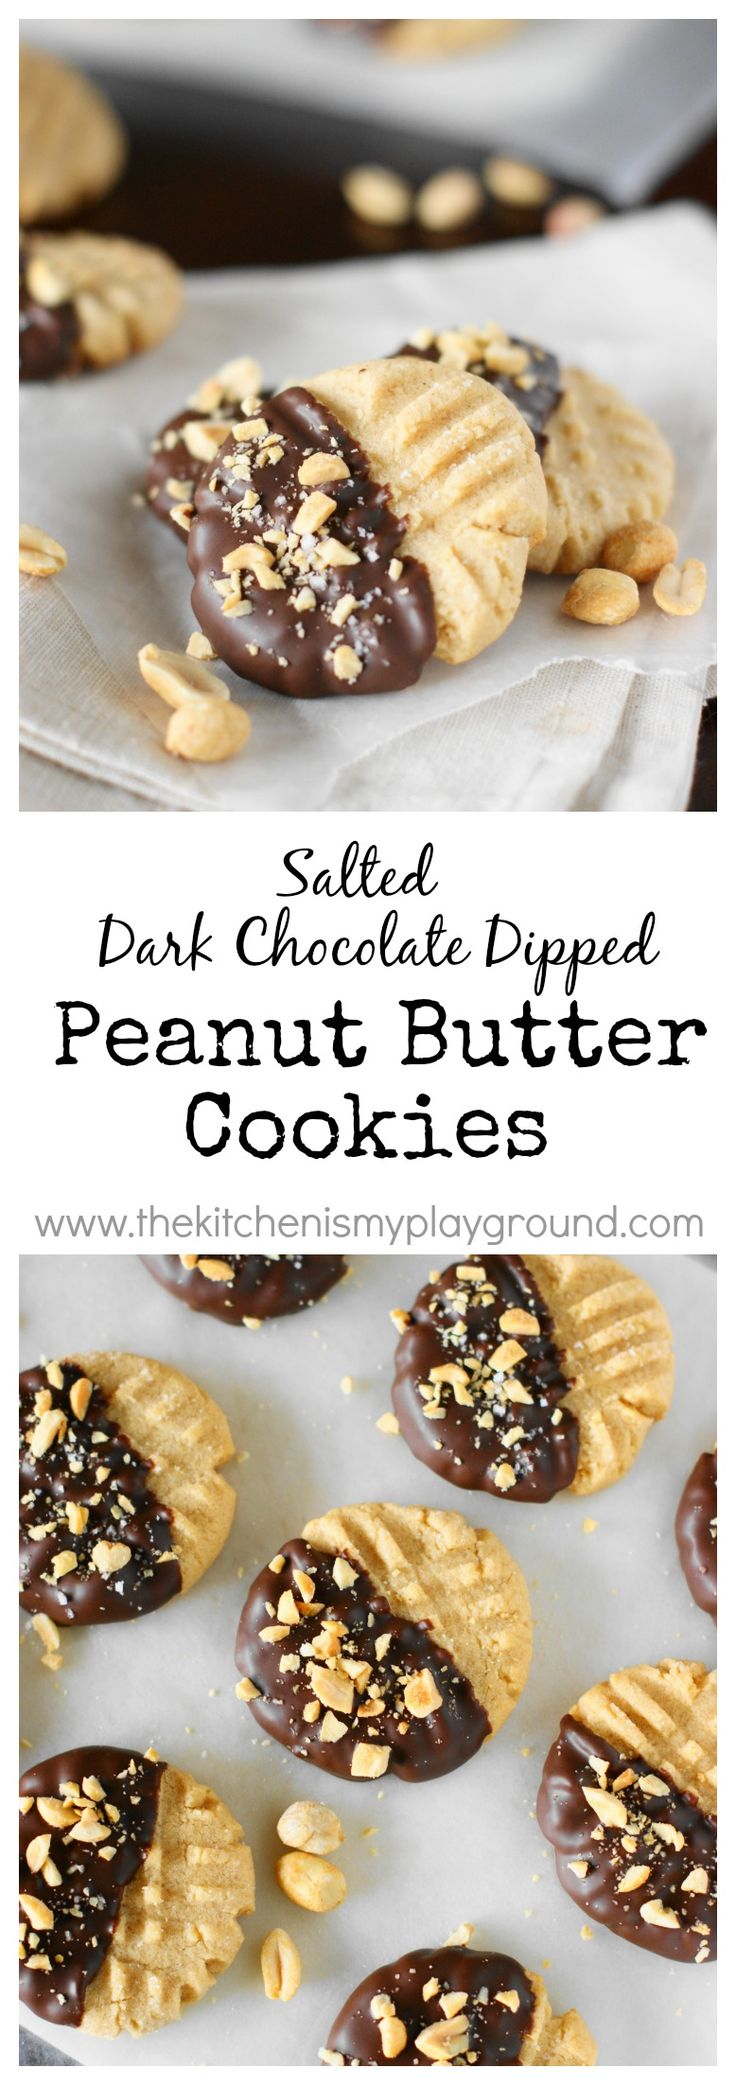 Salted Dark Chocolate Dipped Peanut Butter Cookies ~ give those cookies a fun & elegant flair with a dunk in chocolate.   www.thekitchenismyplayground.com